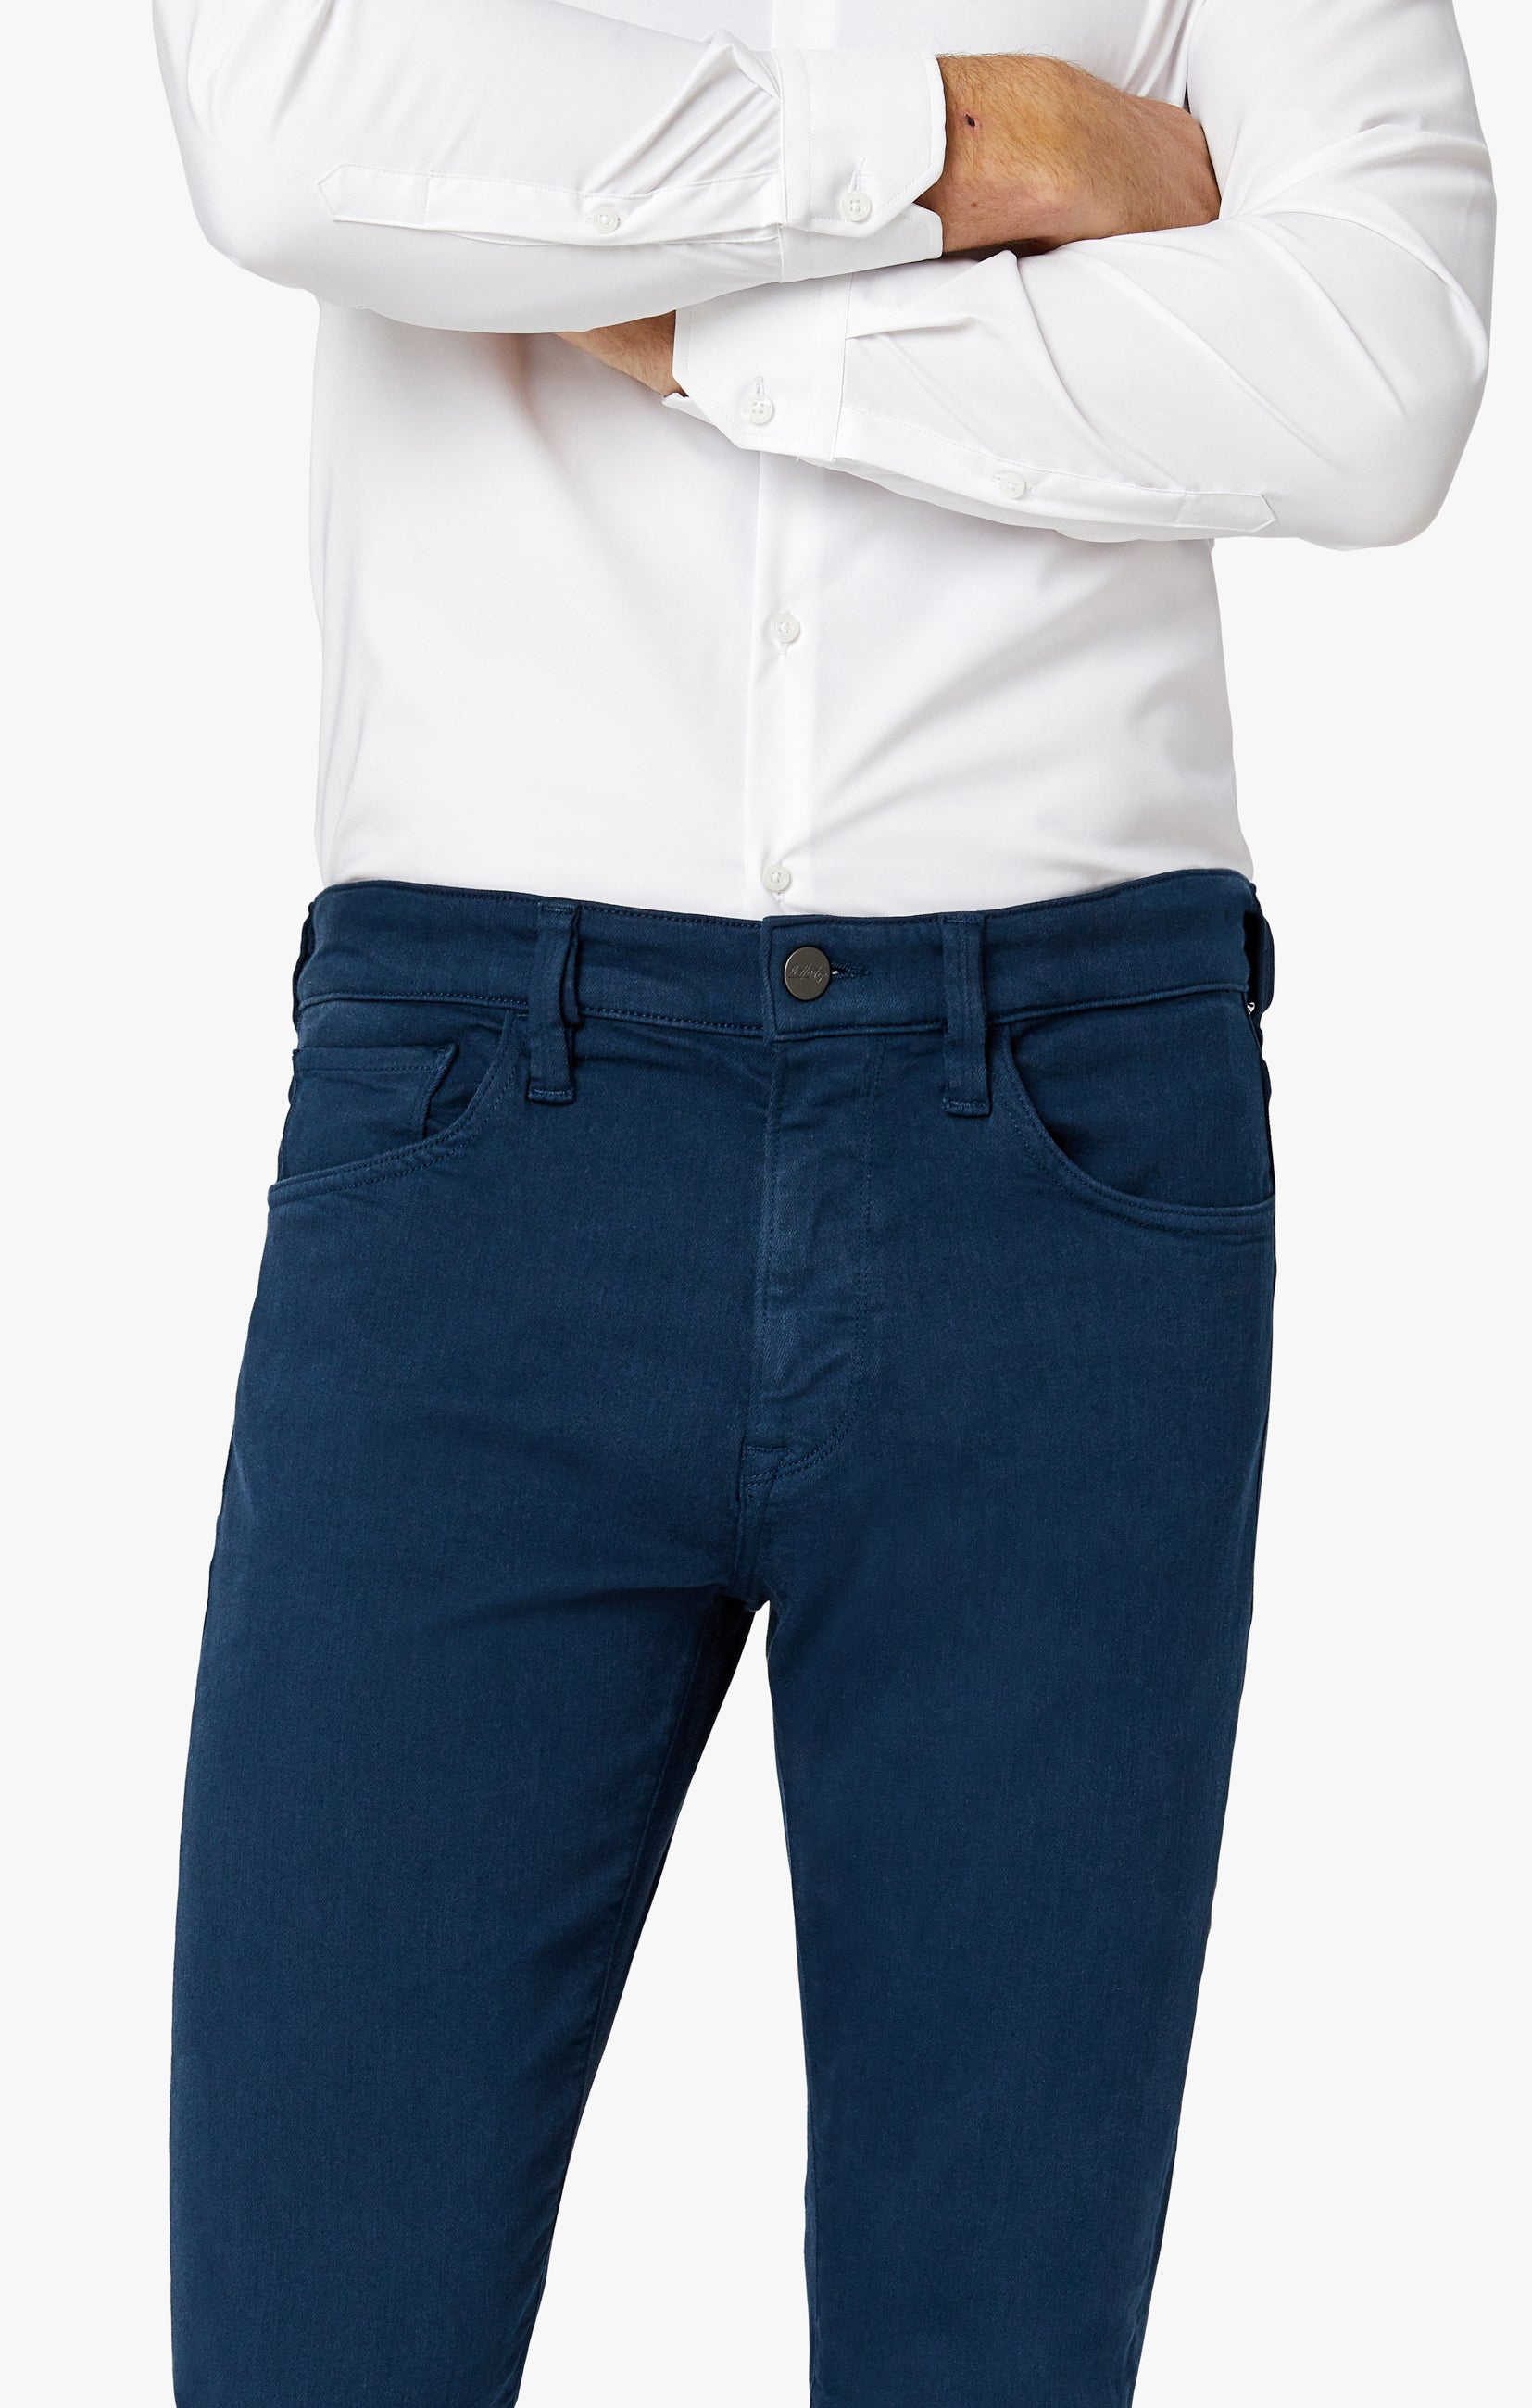 Charisma Relaxed Straight Pants in Petrol Comfort Image 3